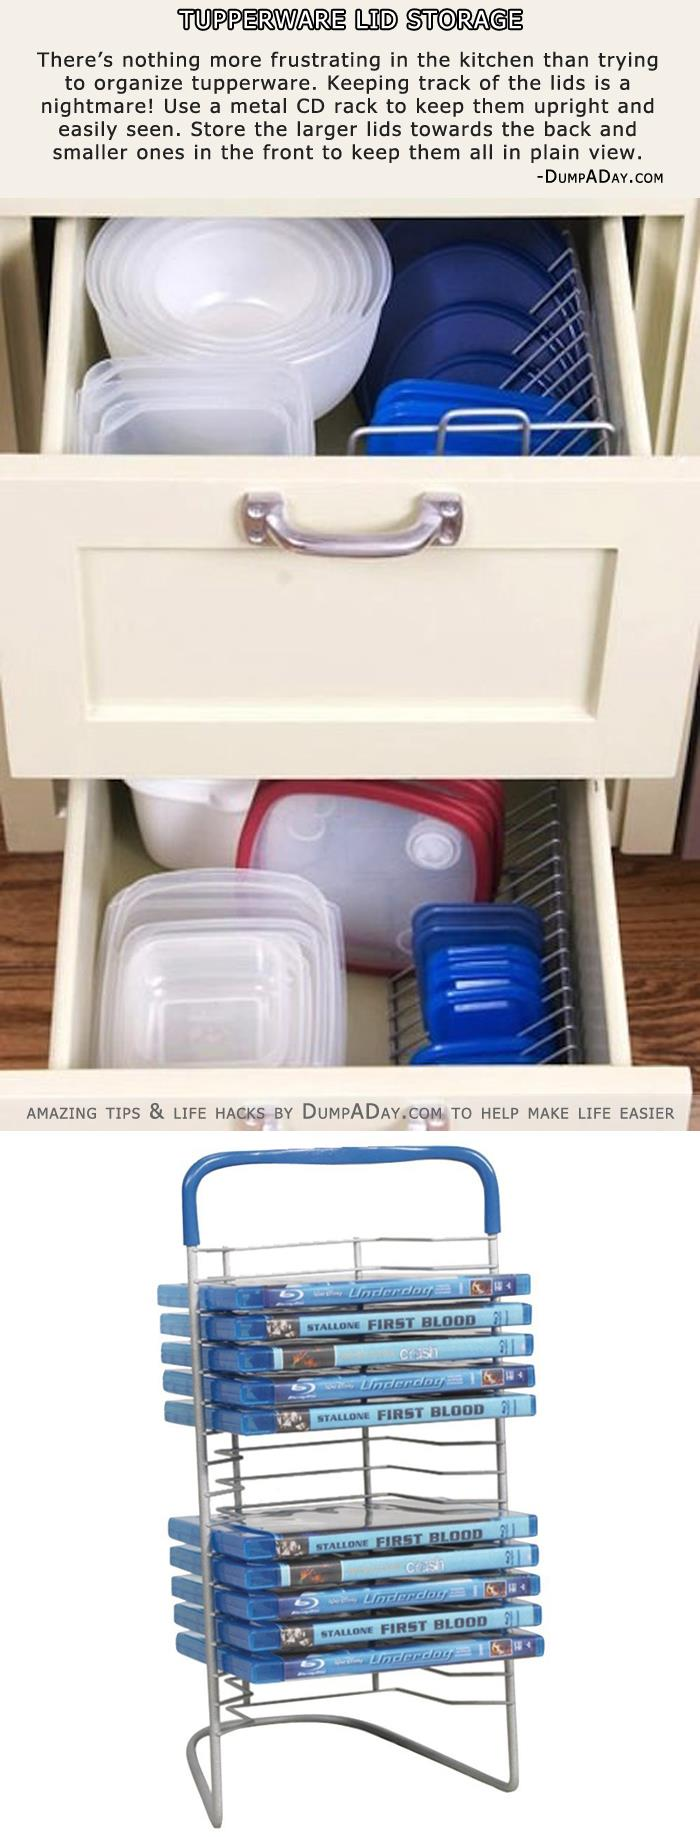 Tupperware Lid Storage- CD Rack